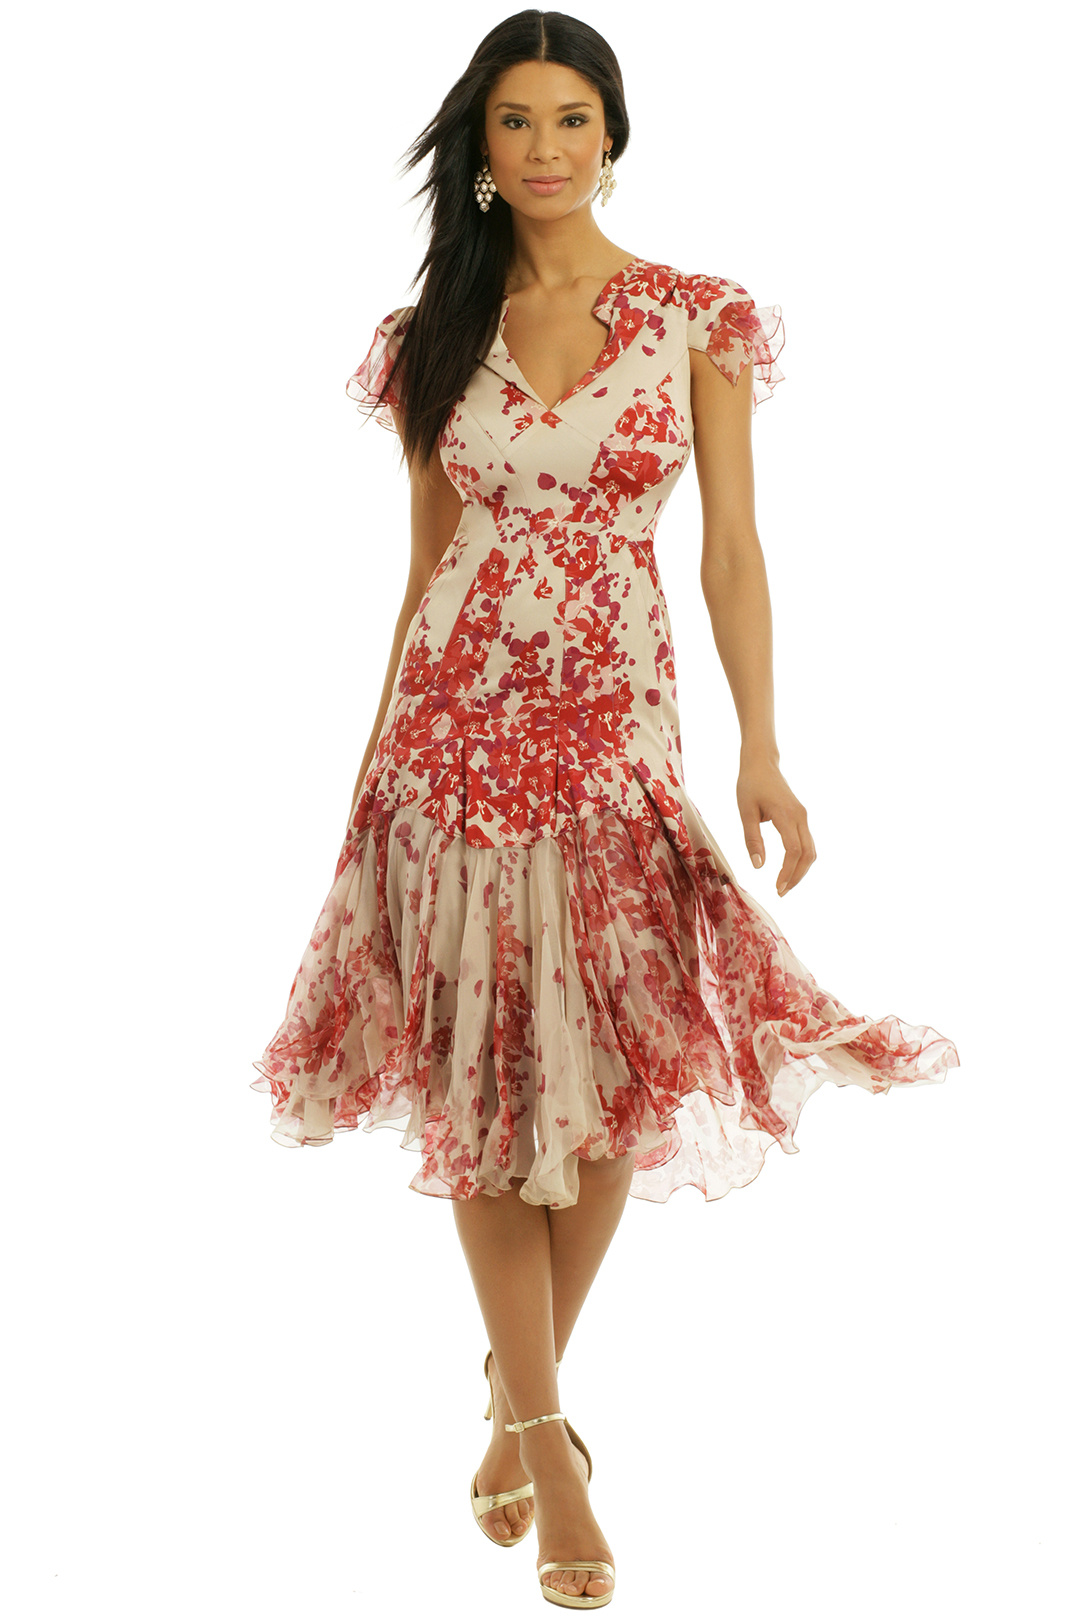 Amazoncom beach wedding guest dress  Dresses  Clothing